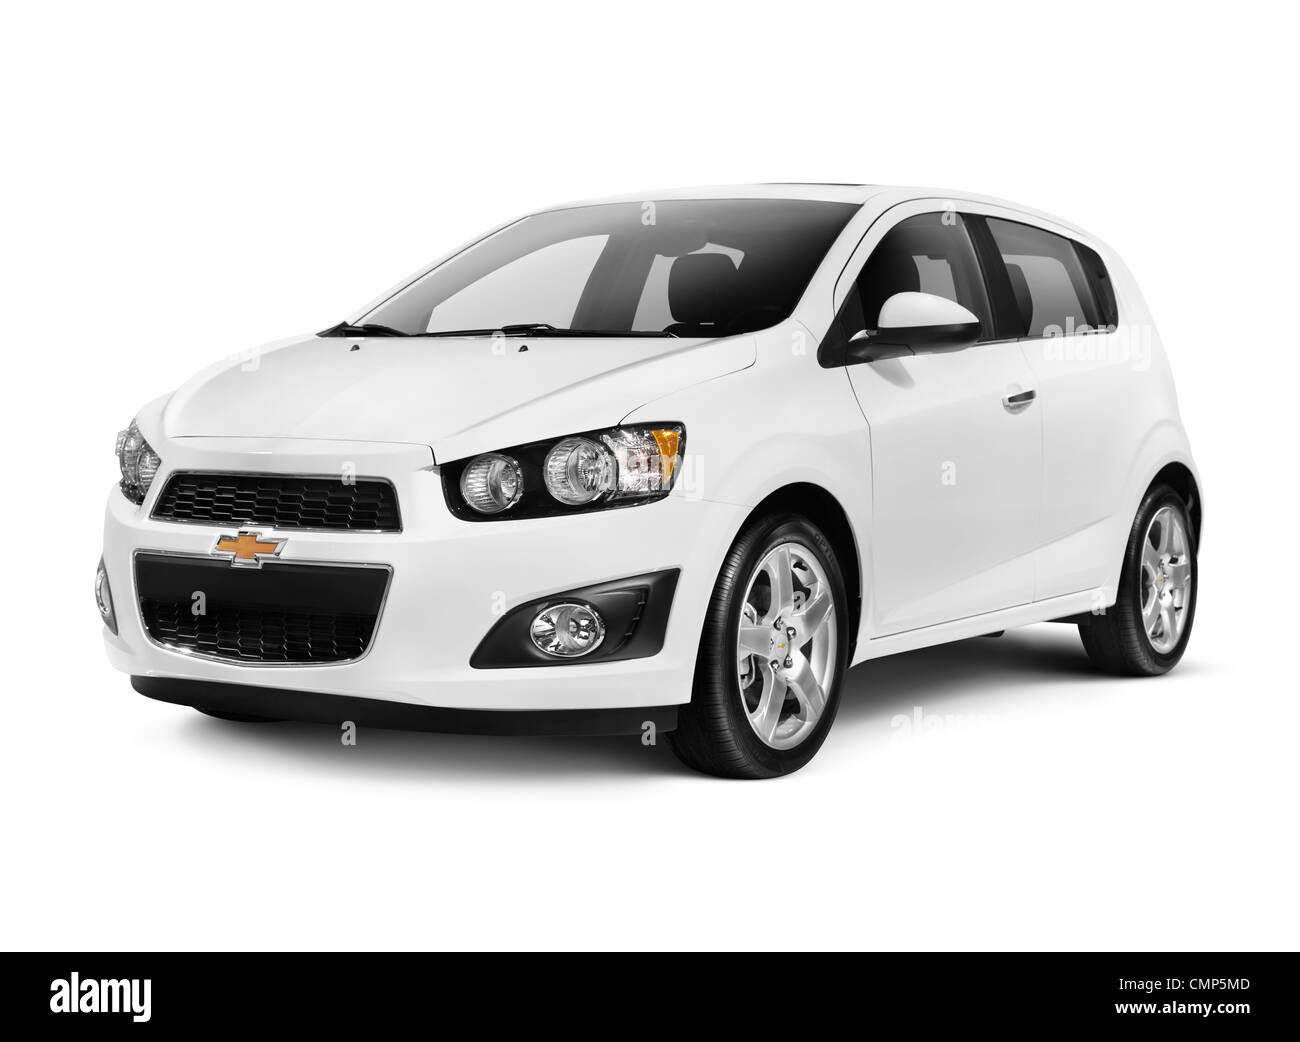 white 2012 chevrolet sonic lt small car isolated on white background stock photo 47201293 alamy. Black Bedroom Furniture Sets. Home Design Ideas